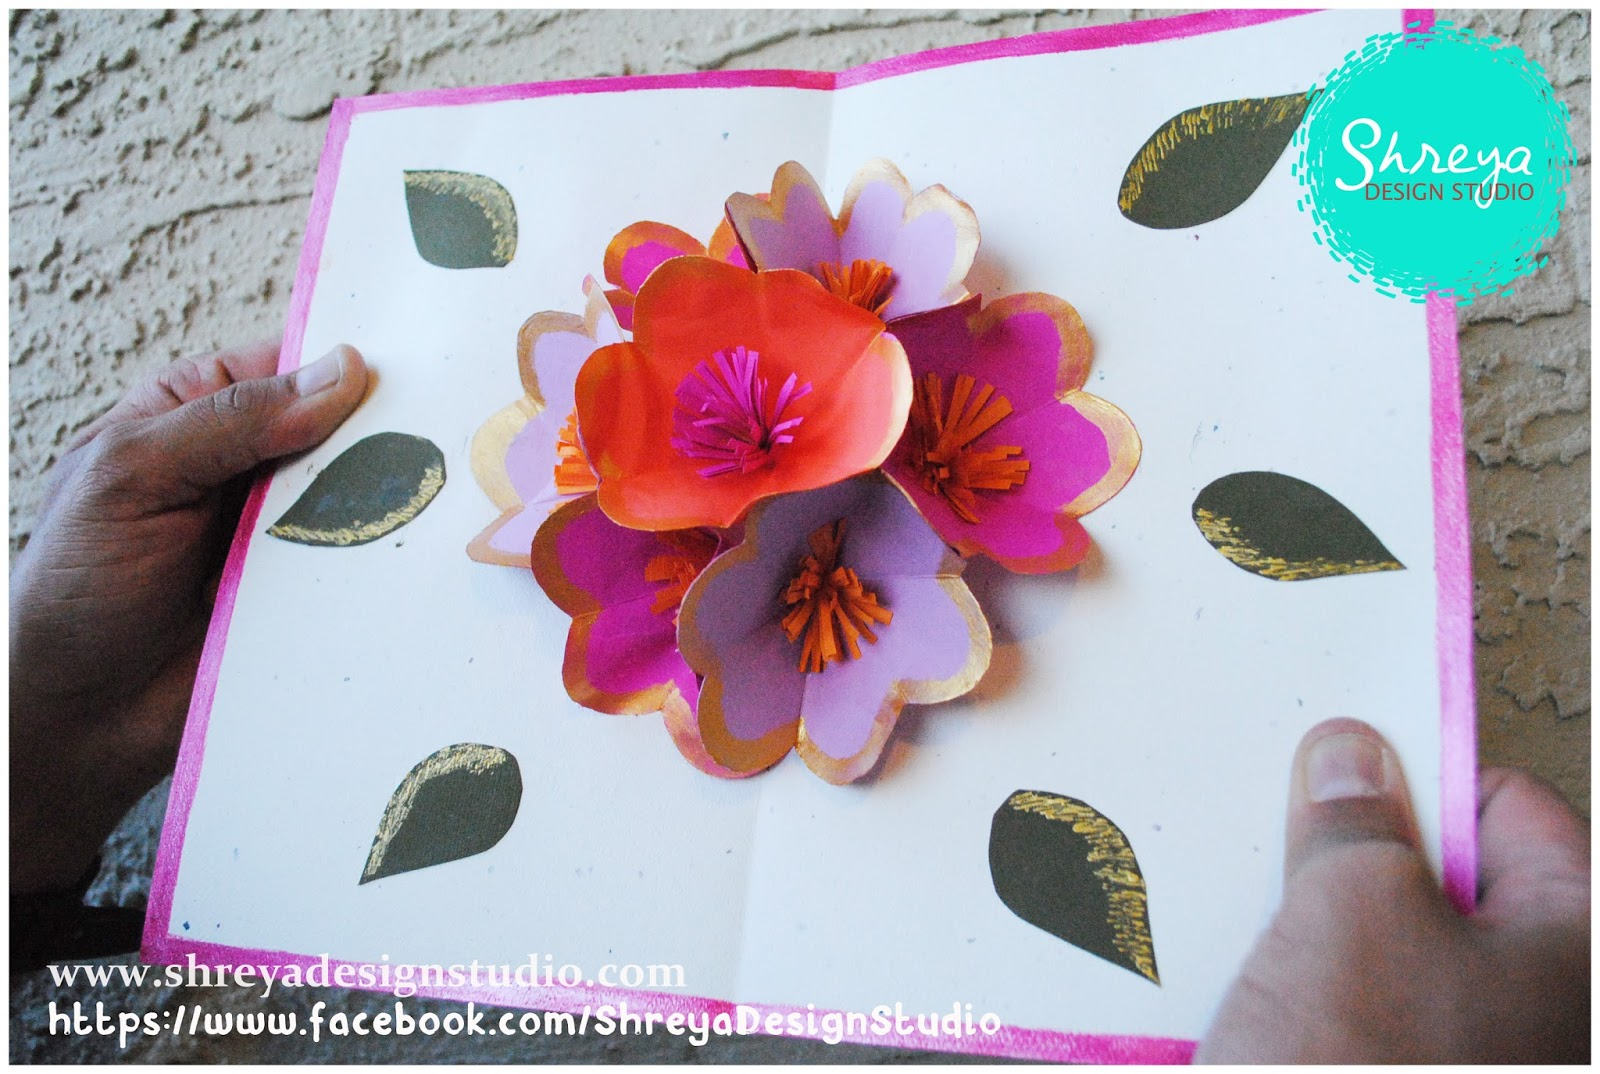 Tutorial how to make a seven flower pop up card shreya design studio your card is sure to make someones day kristyandbryce Choice Image